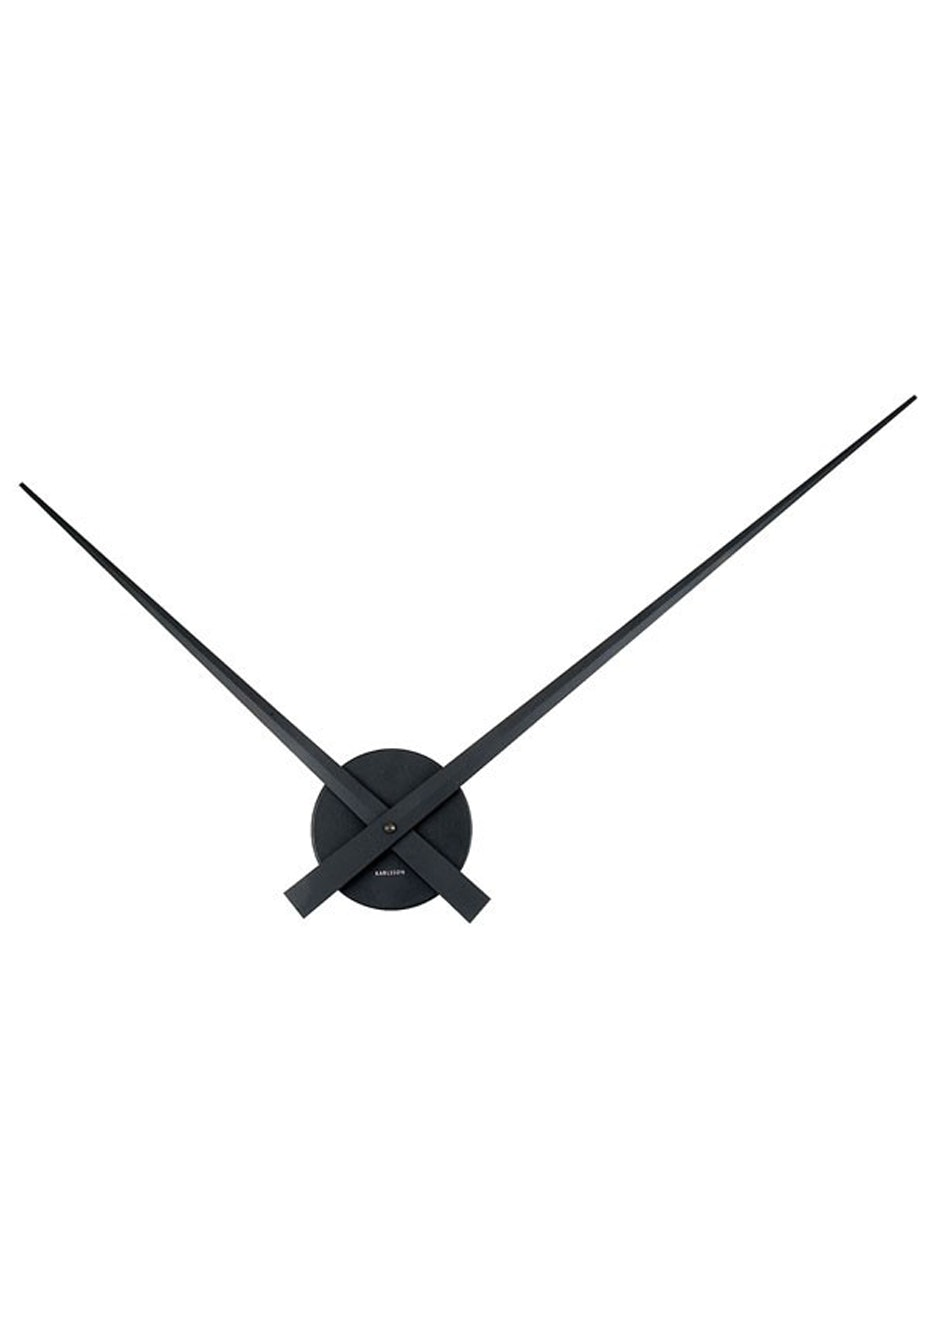 Karlsson - Wall Clock 'Little Big Time' - Black